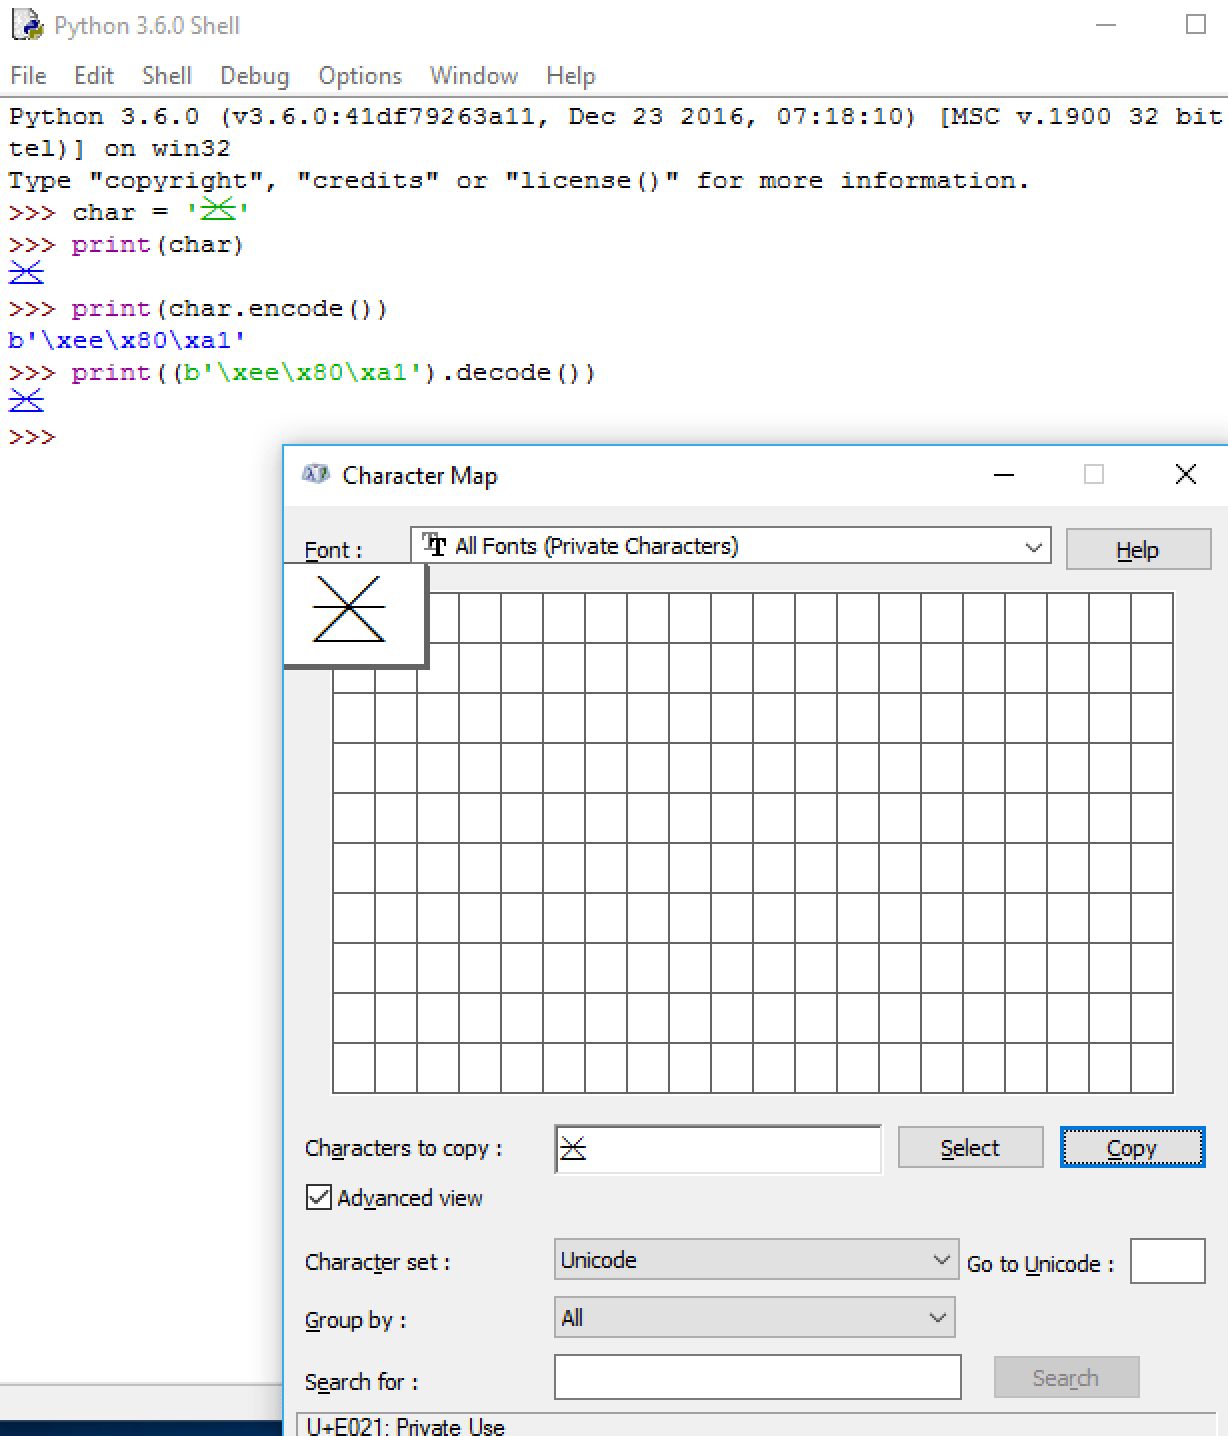 windows - Private Unicode Character displays differently in Python 3 Interpreter - Stack Overflow